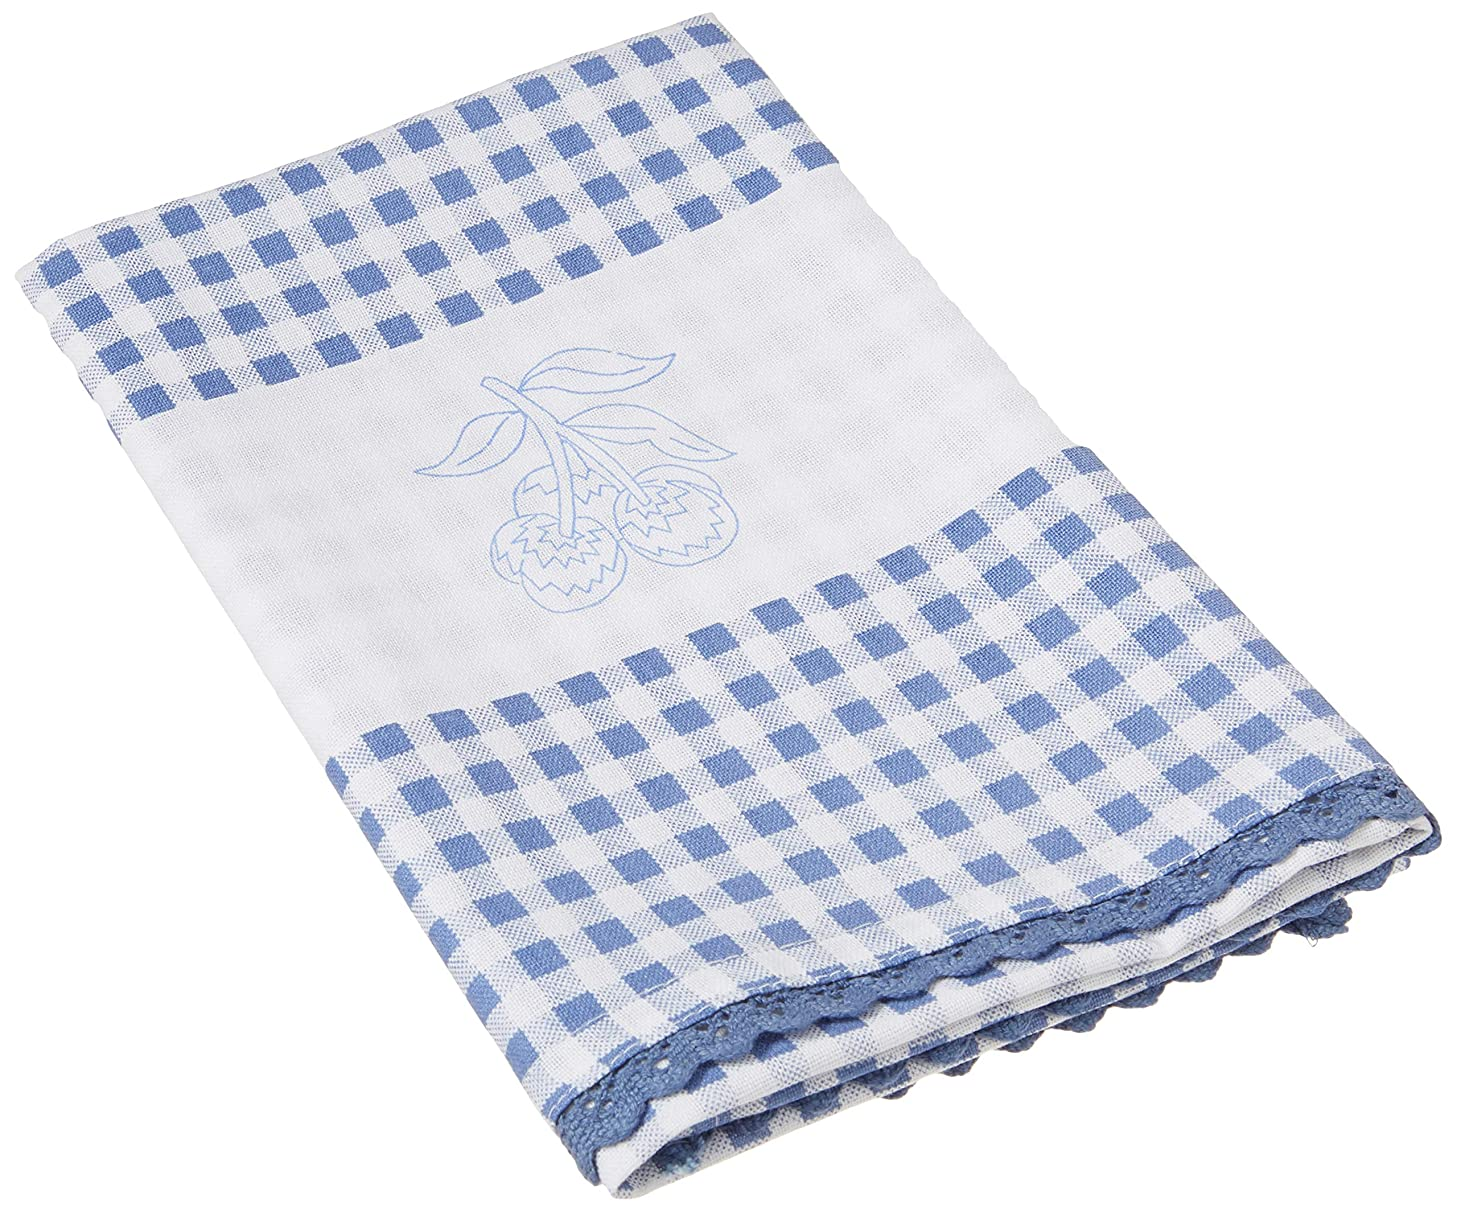 Tobin Cherry Stamped Kitchen Towels for Embroidery (2/Pack), 16